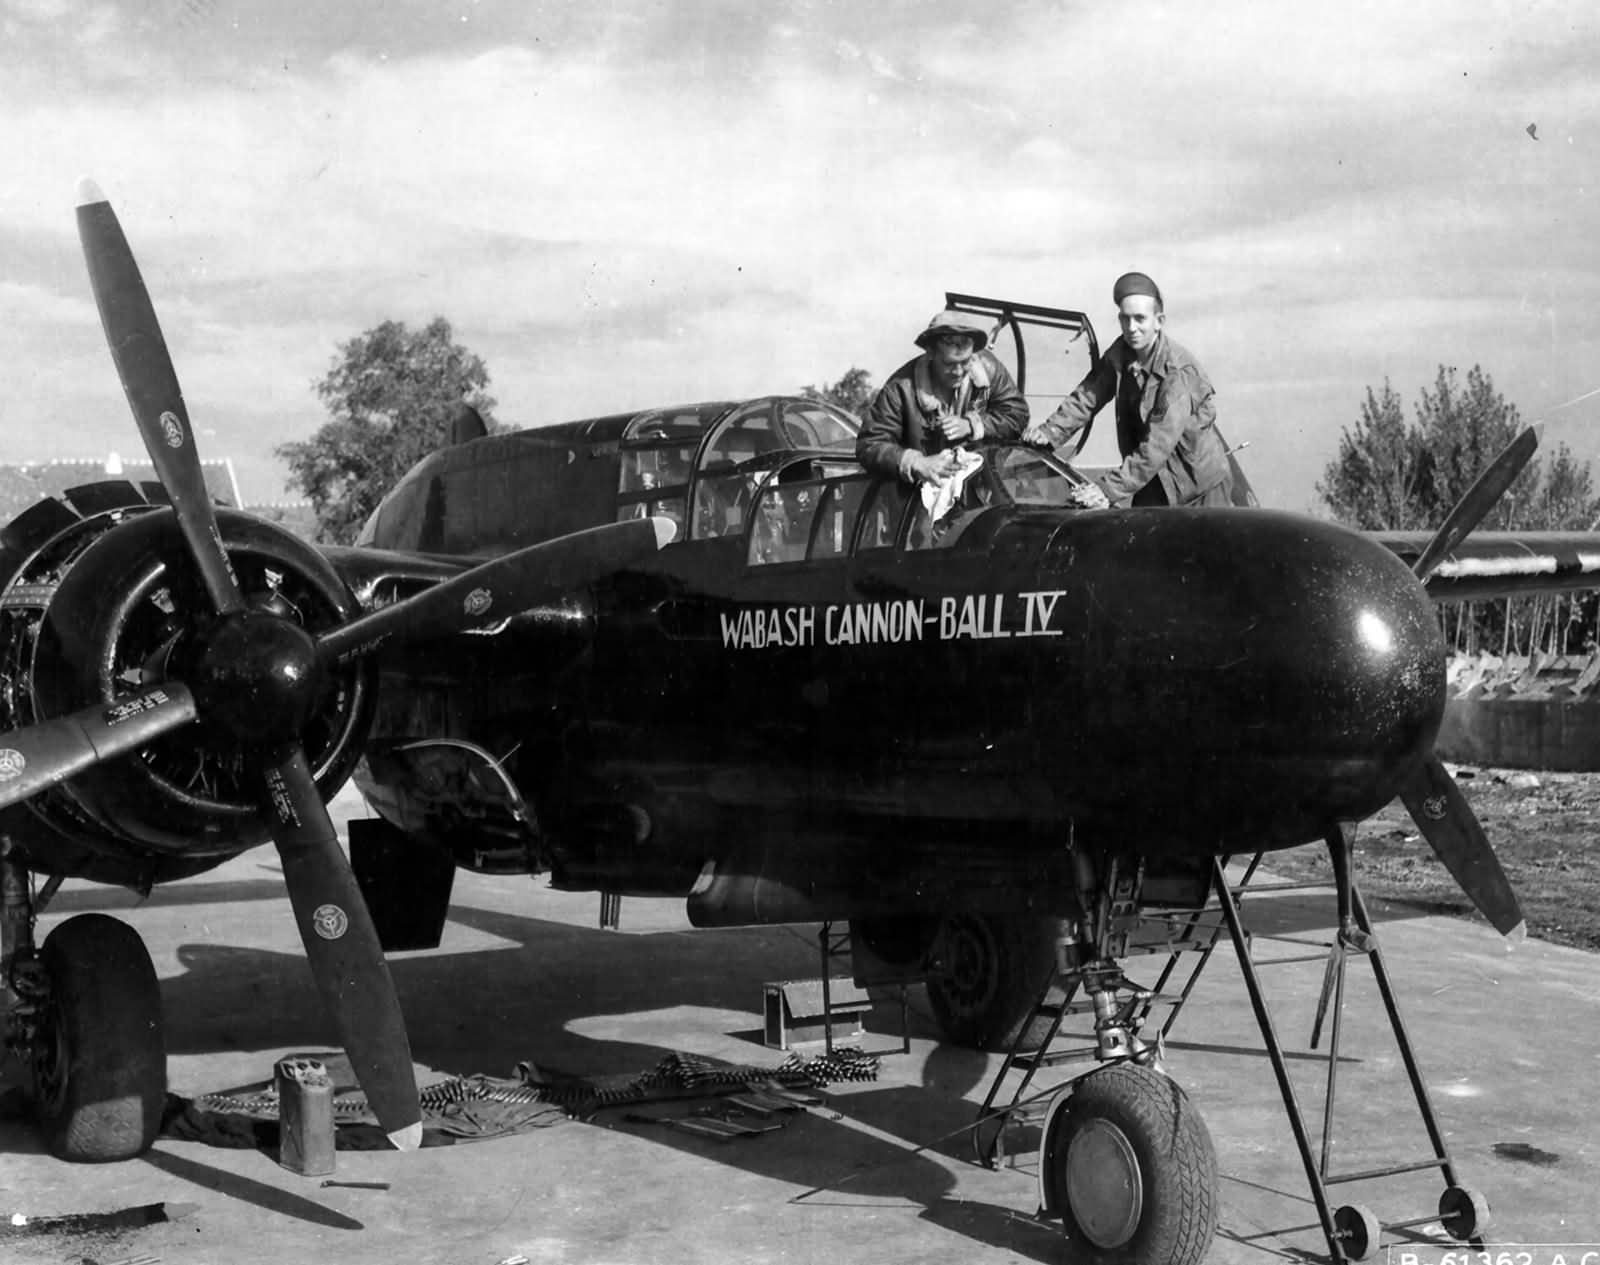 P 61a 42 5580 Wabash Cannon Ball Iv Of The 425th Night